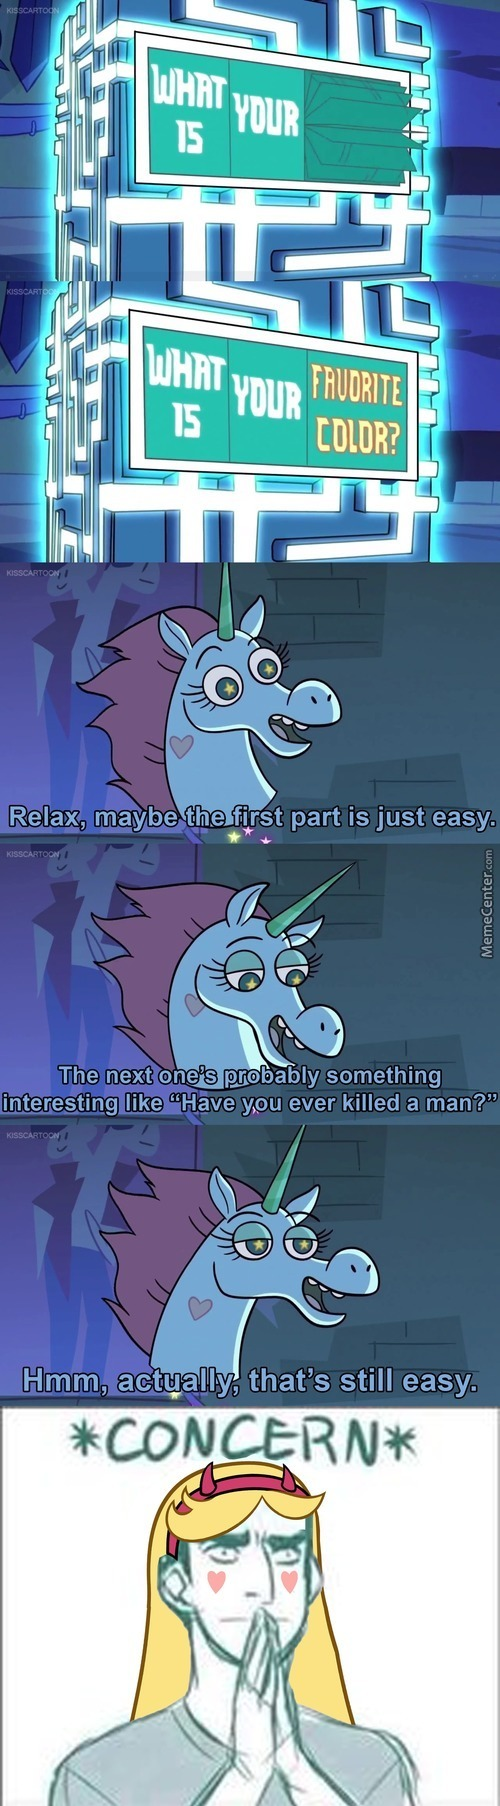 """You're That Unicorn From """"the Cabin In The Woods"""", Aren't You?"""